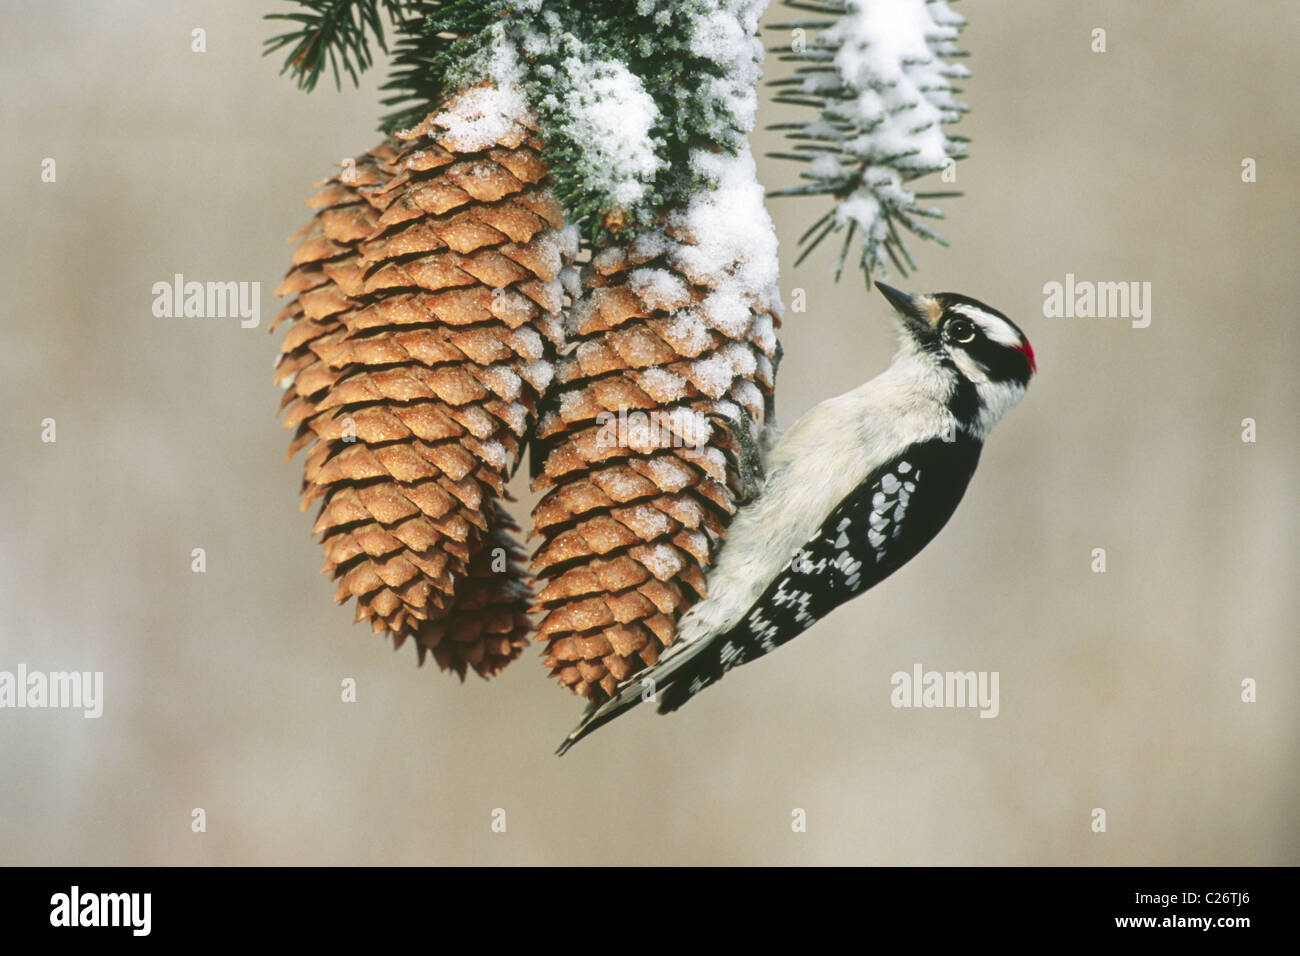 Downy Woodpecker on Spruce Cones - Stock Image